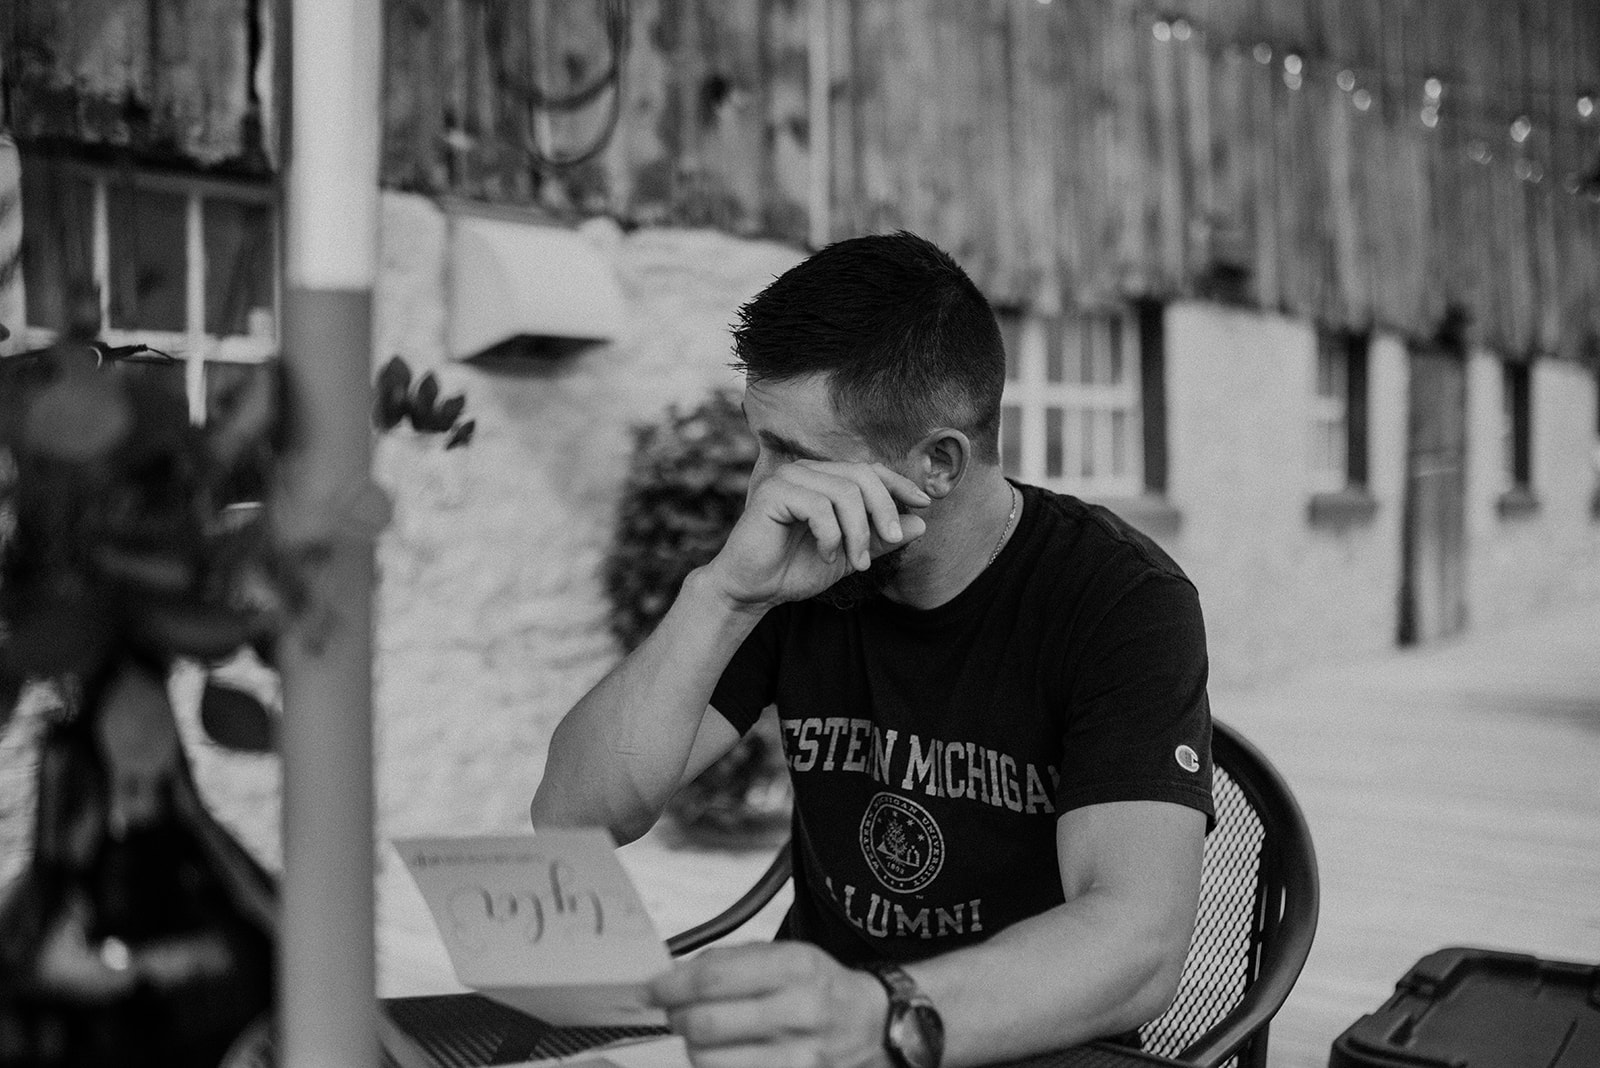 overthevineswisconsinwedding_0251.jpg